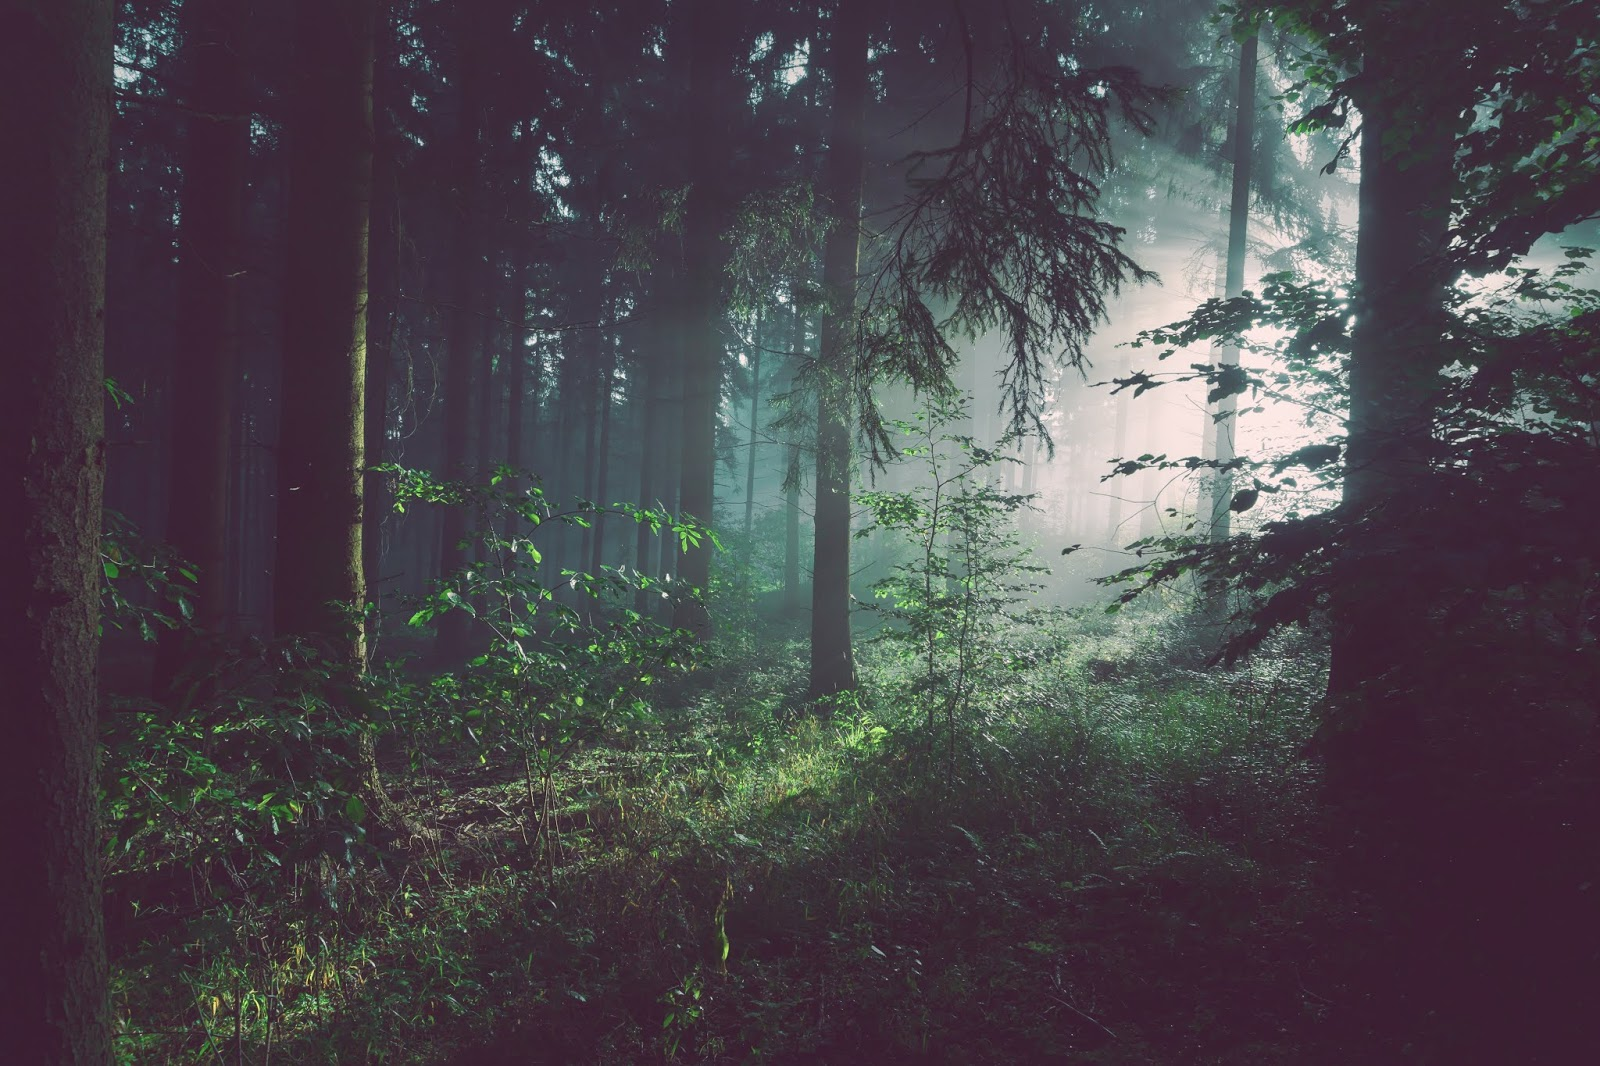 Atmospheric photo taken in a forest, with the sun light streaming through from the right